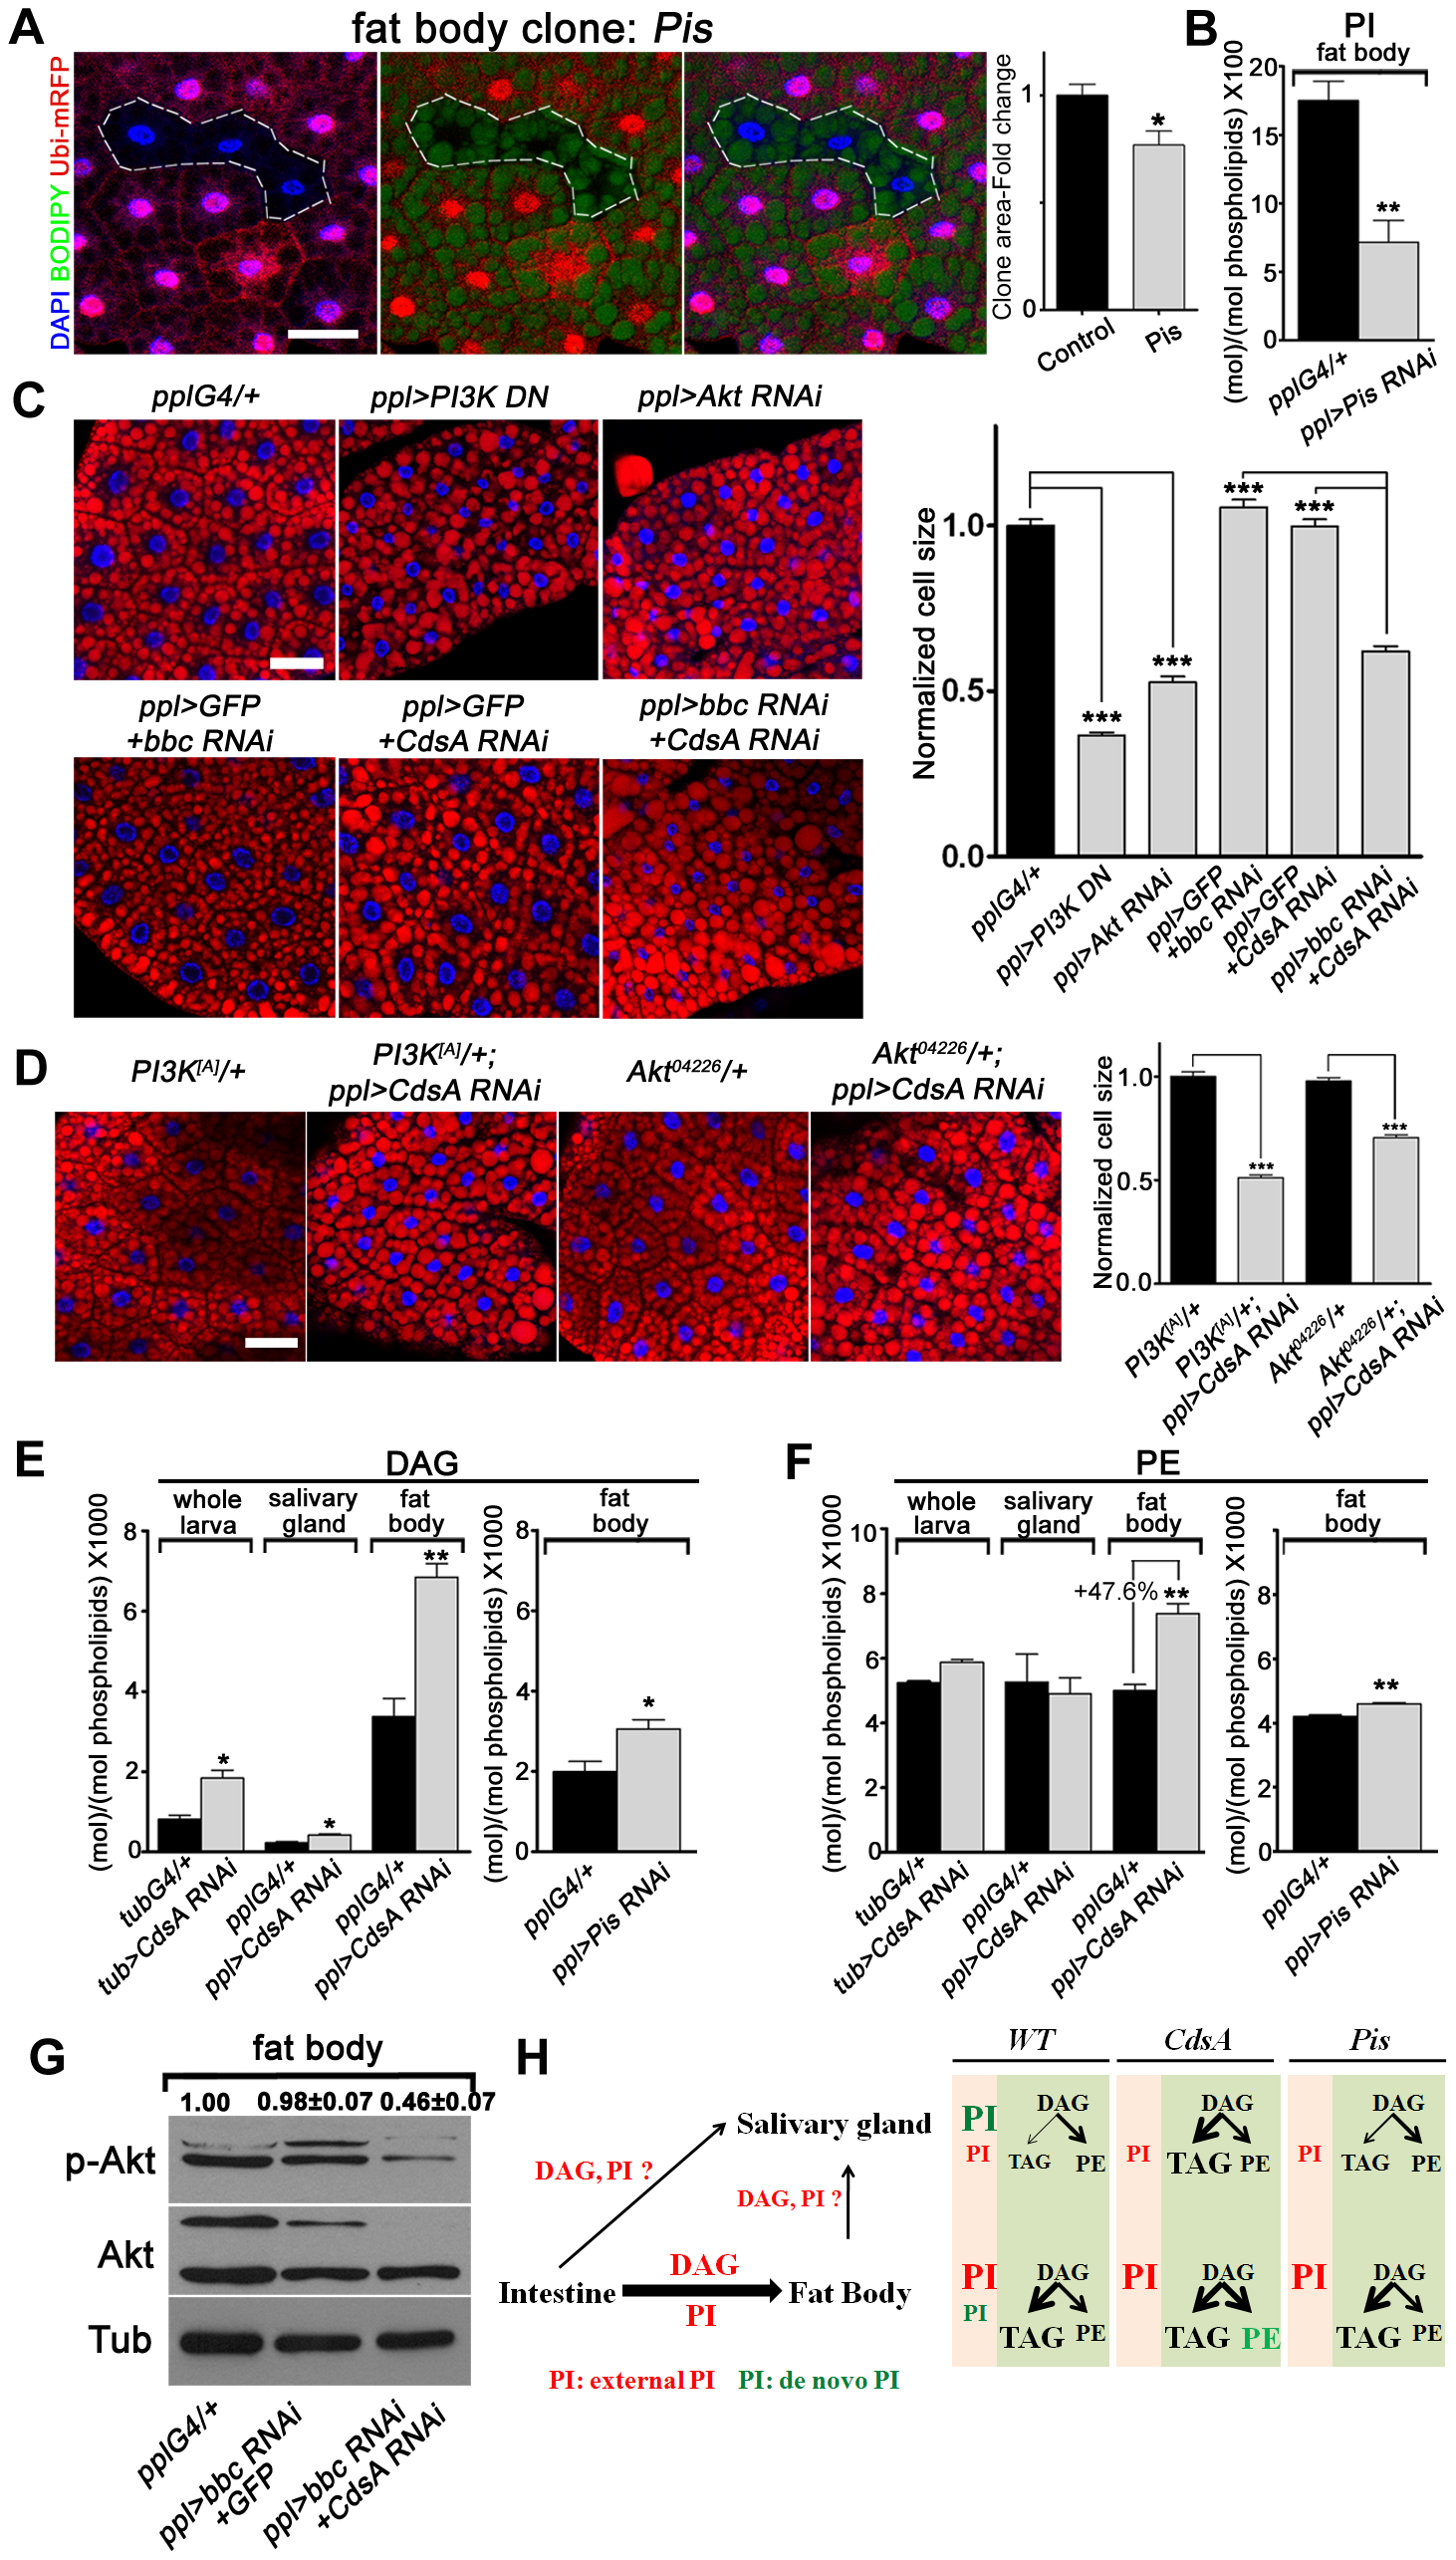 A DAG-to-PE route mediated by Bbc may support cell growth in <i>CdsA RNAi</i> fat body.